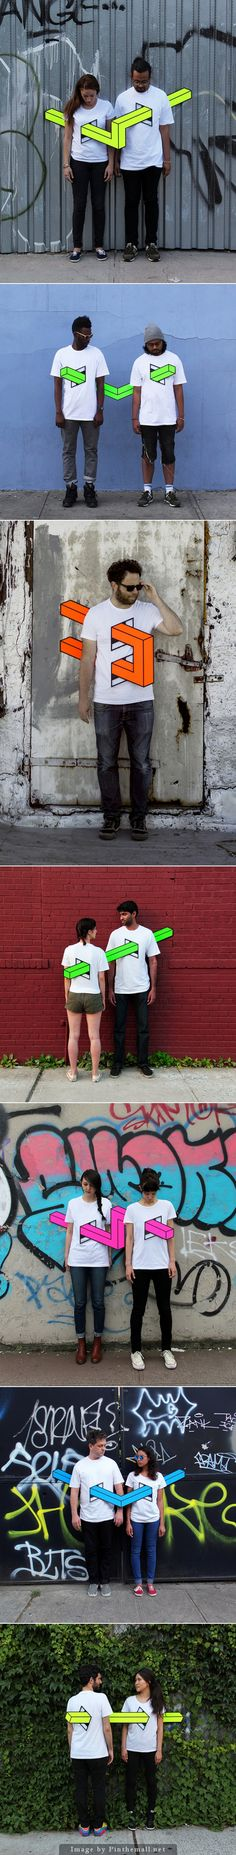 People Skewered with Geometric Shapes by Aakash Nihalani 서있는 사진, 하트